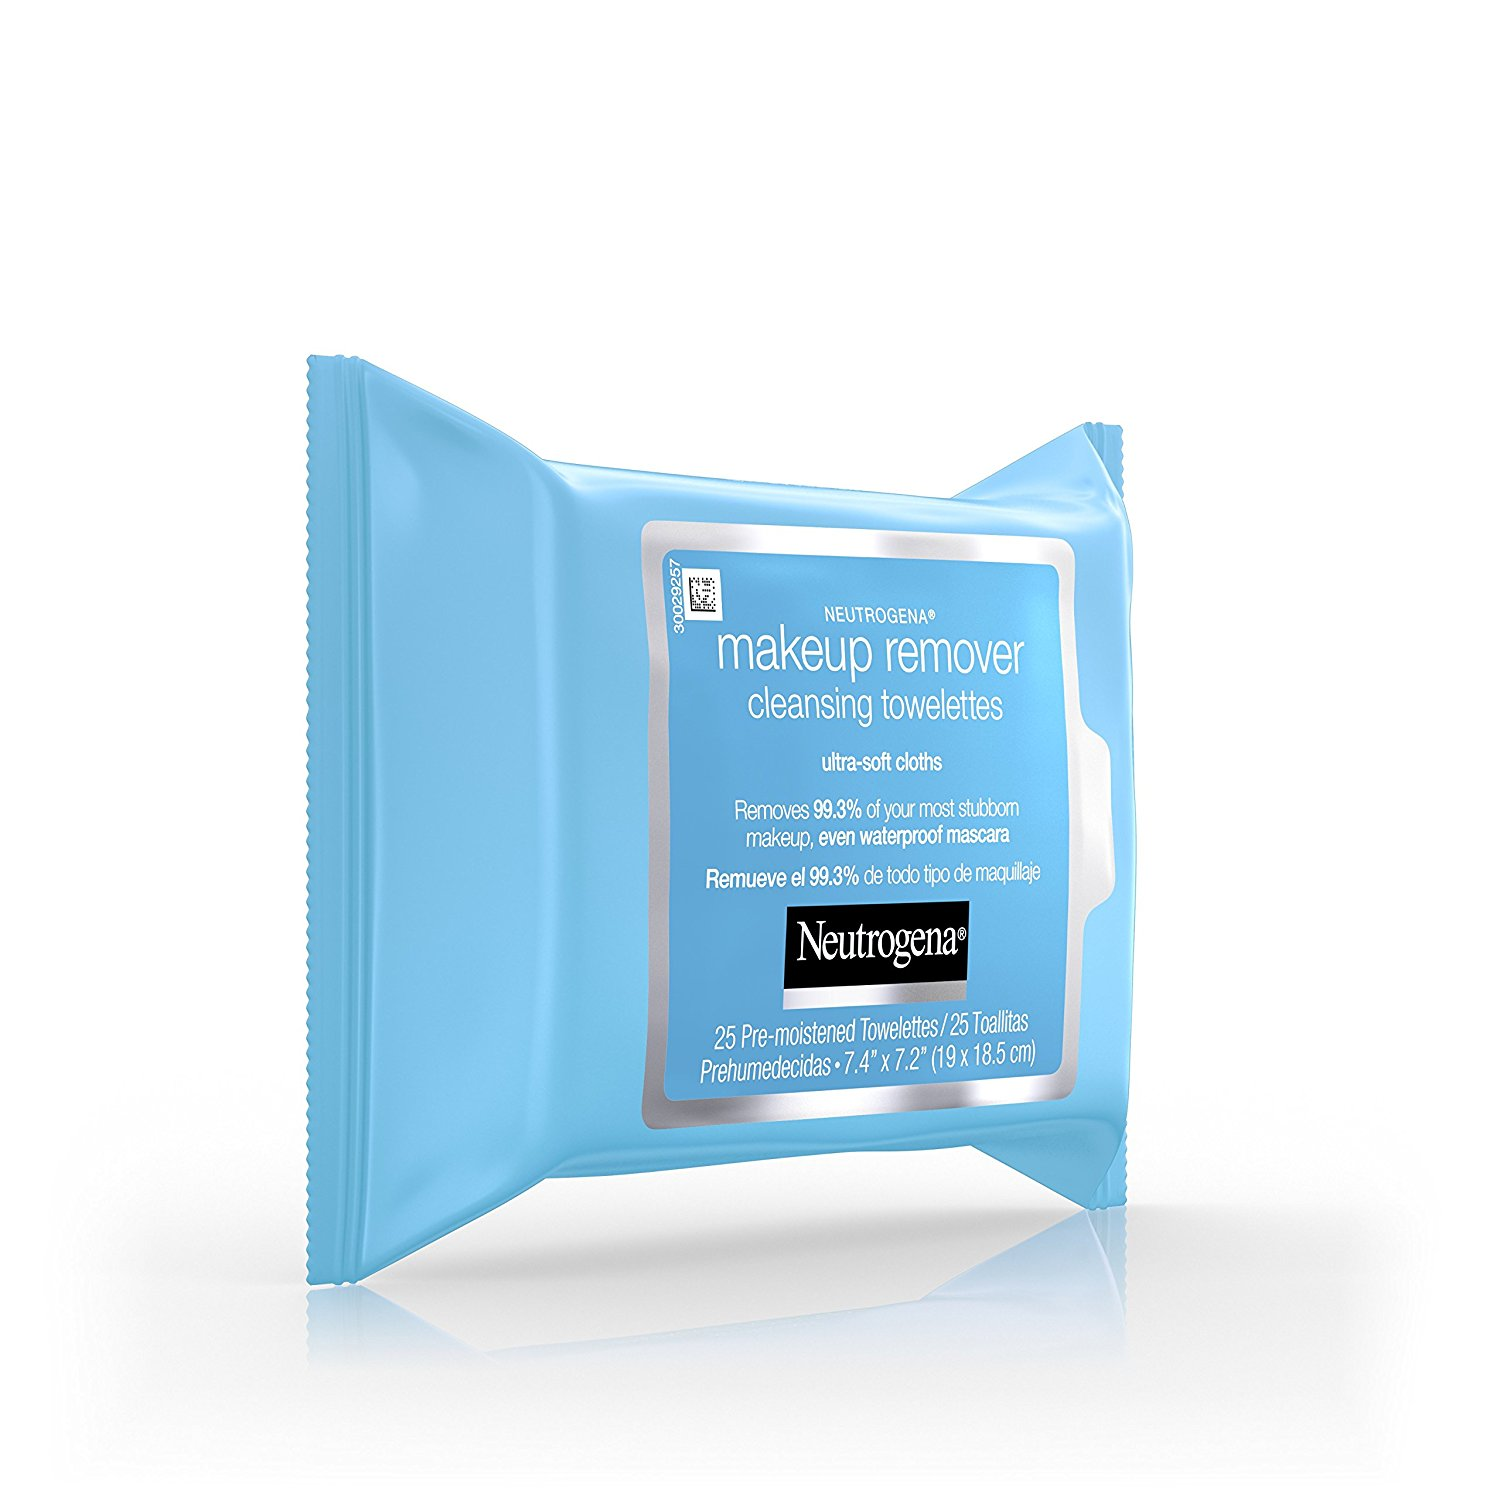 Neutrogena Makeup Remover Cleansing Towelettes